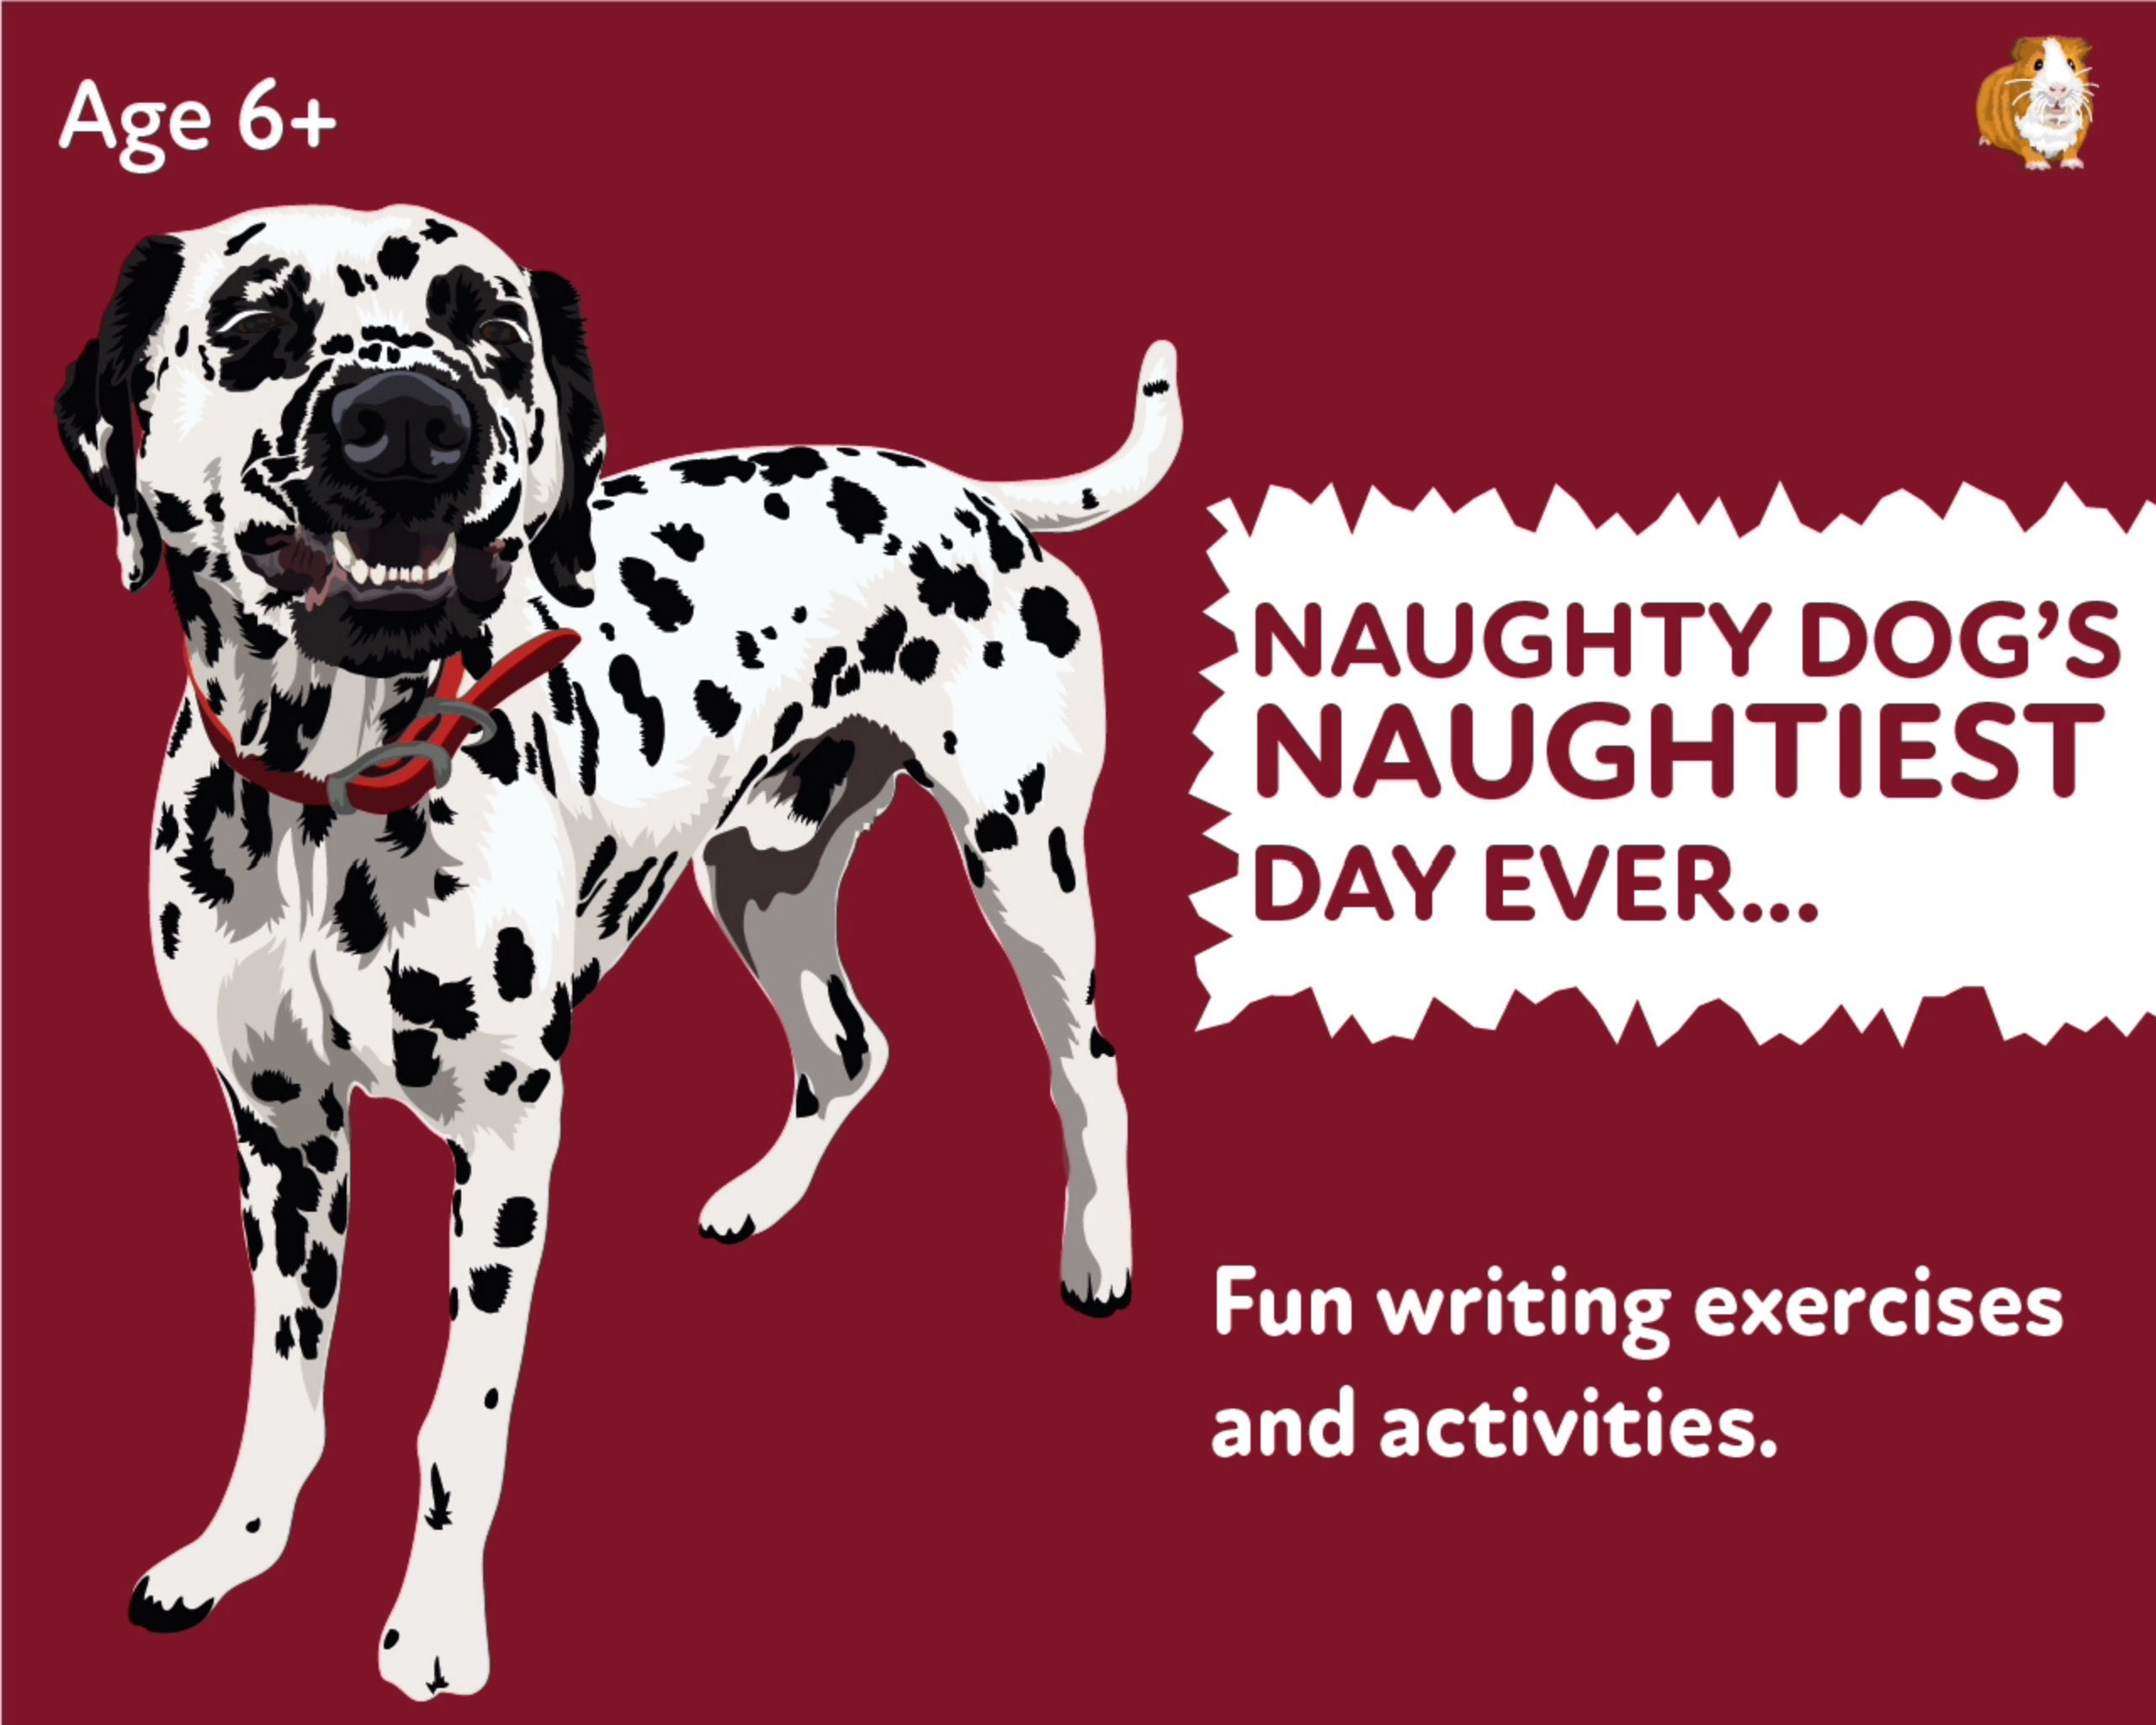 'The Naughty Dogs Naughtiest Day' A Fun Writing And Drawing Activity (6 years +)